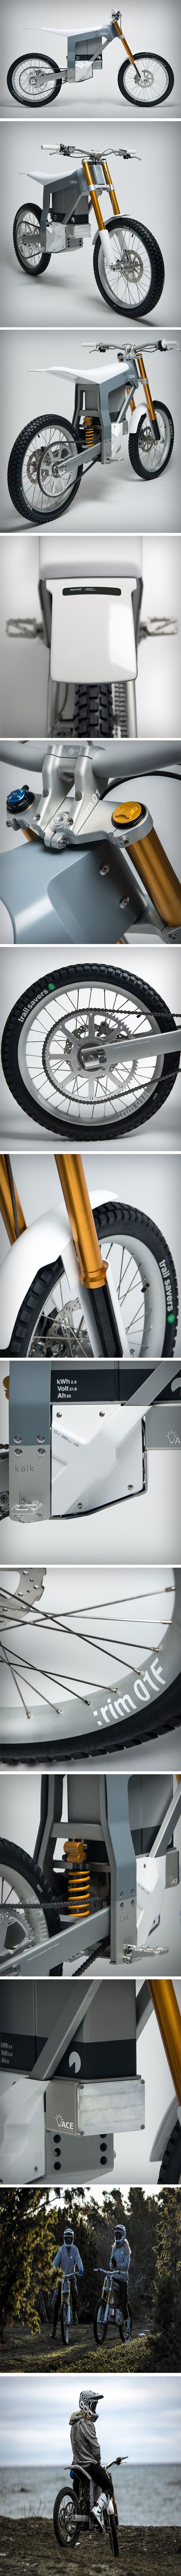 Minimalism is slowly making its way across to the automotive industry one bike and car at a time. And the Kalk Electric Dirt Bike is no exception. It's quite simply delicious. Designed for light off-roading, this eco-friendly bike is somewhat of an art project if you happen to catch it from the side. The bike's overall minimalism may be what makes it so desirable. Read more and PRE ORDER NOW!